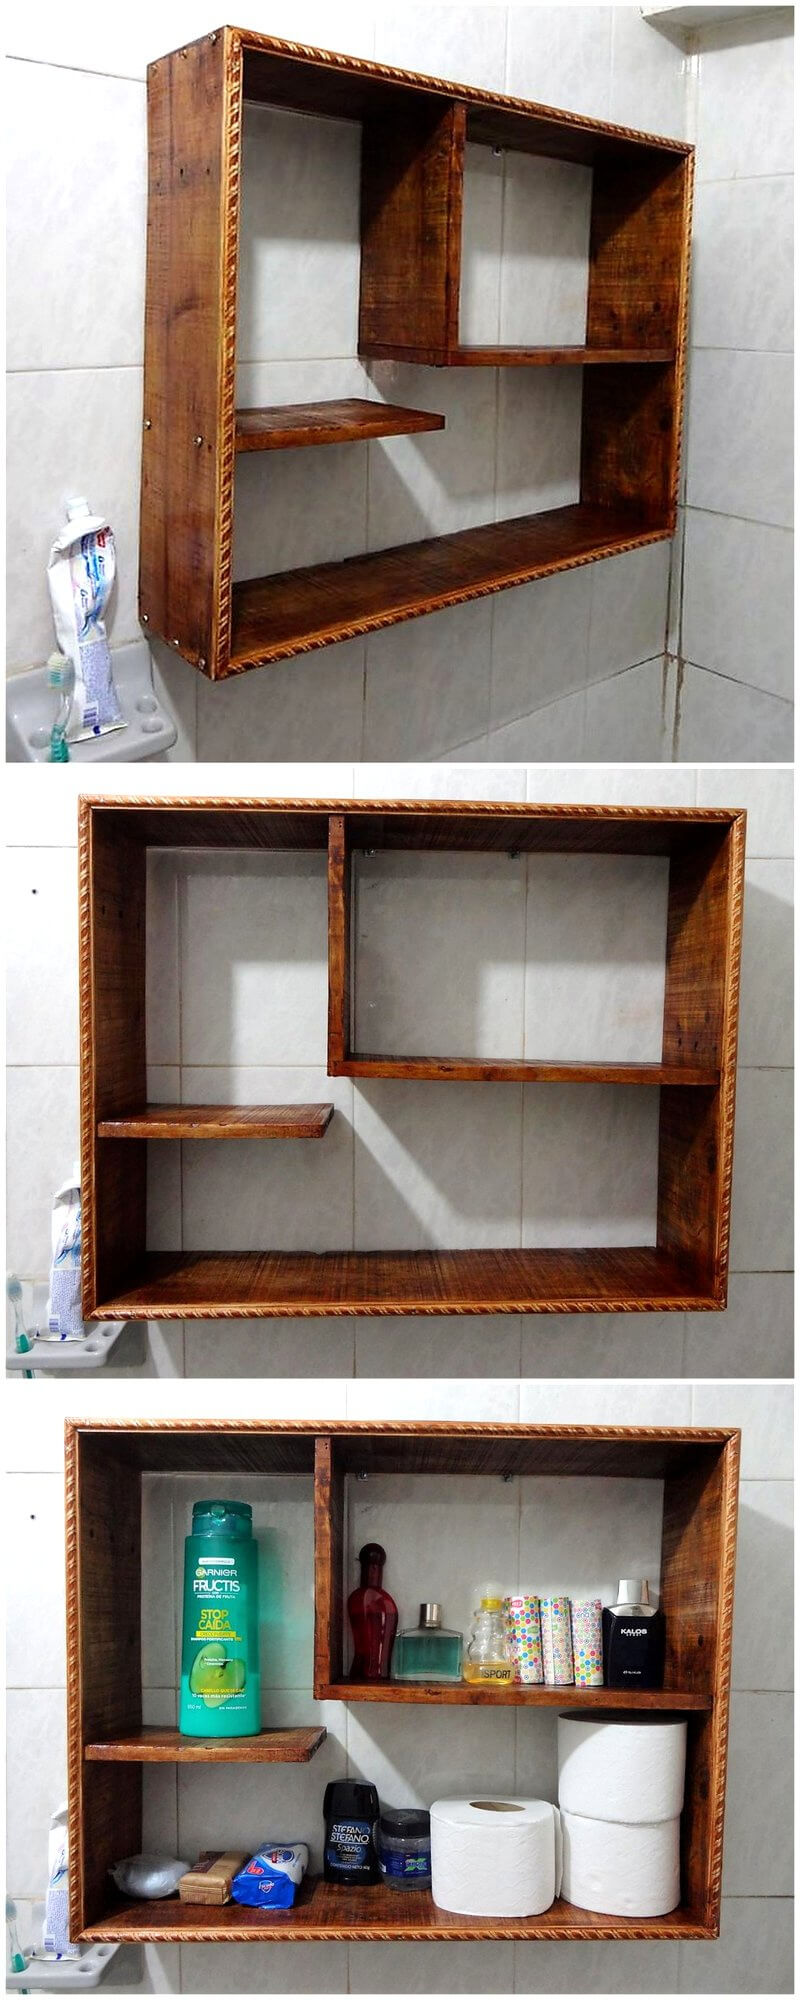 cheap kitchen sink slide out organizers cabinets simple and creative ideas for wood pallet recycling | ...